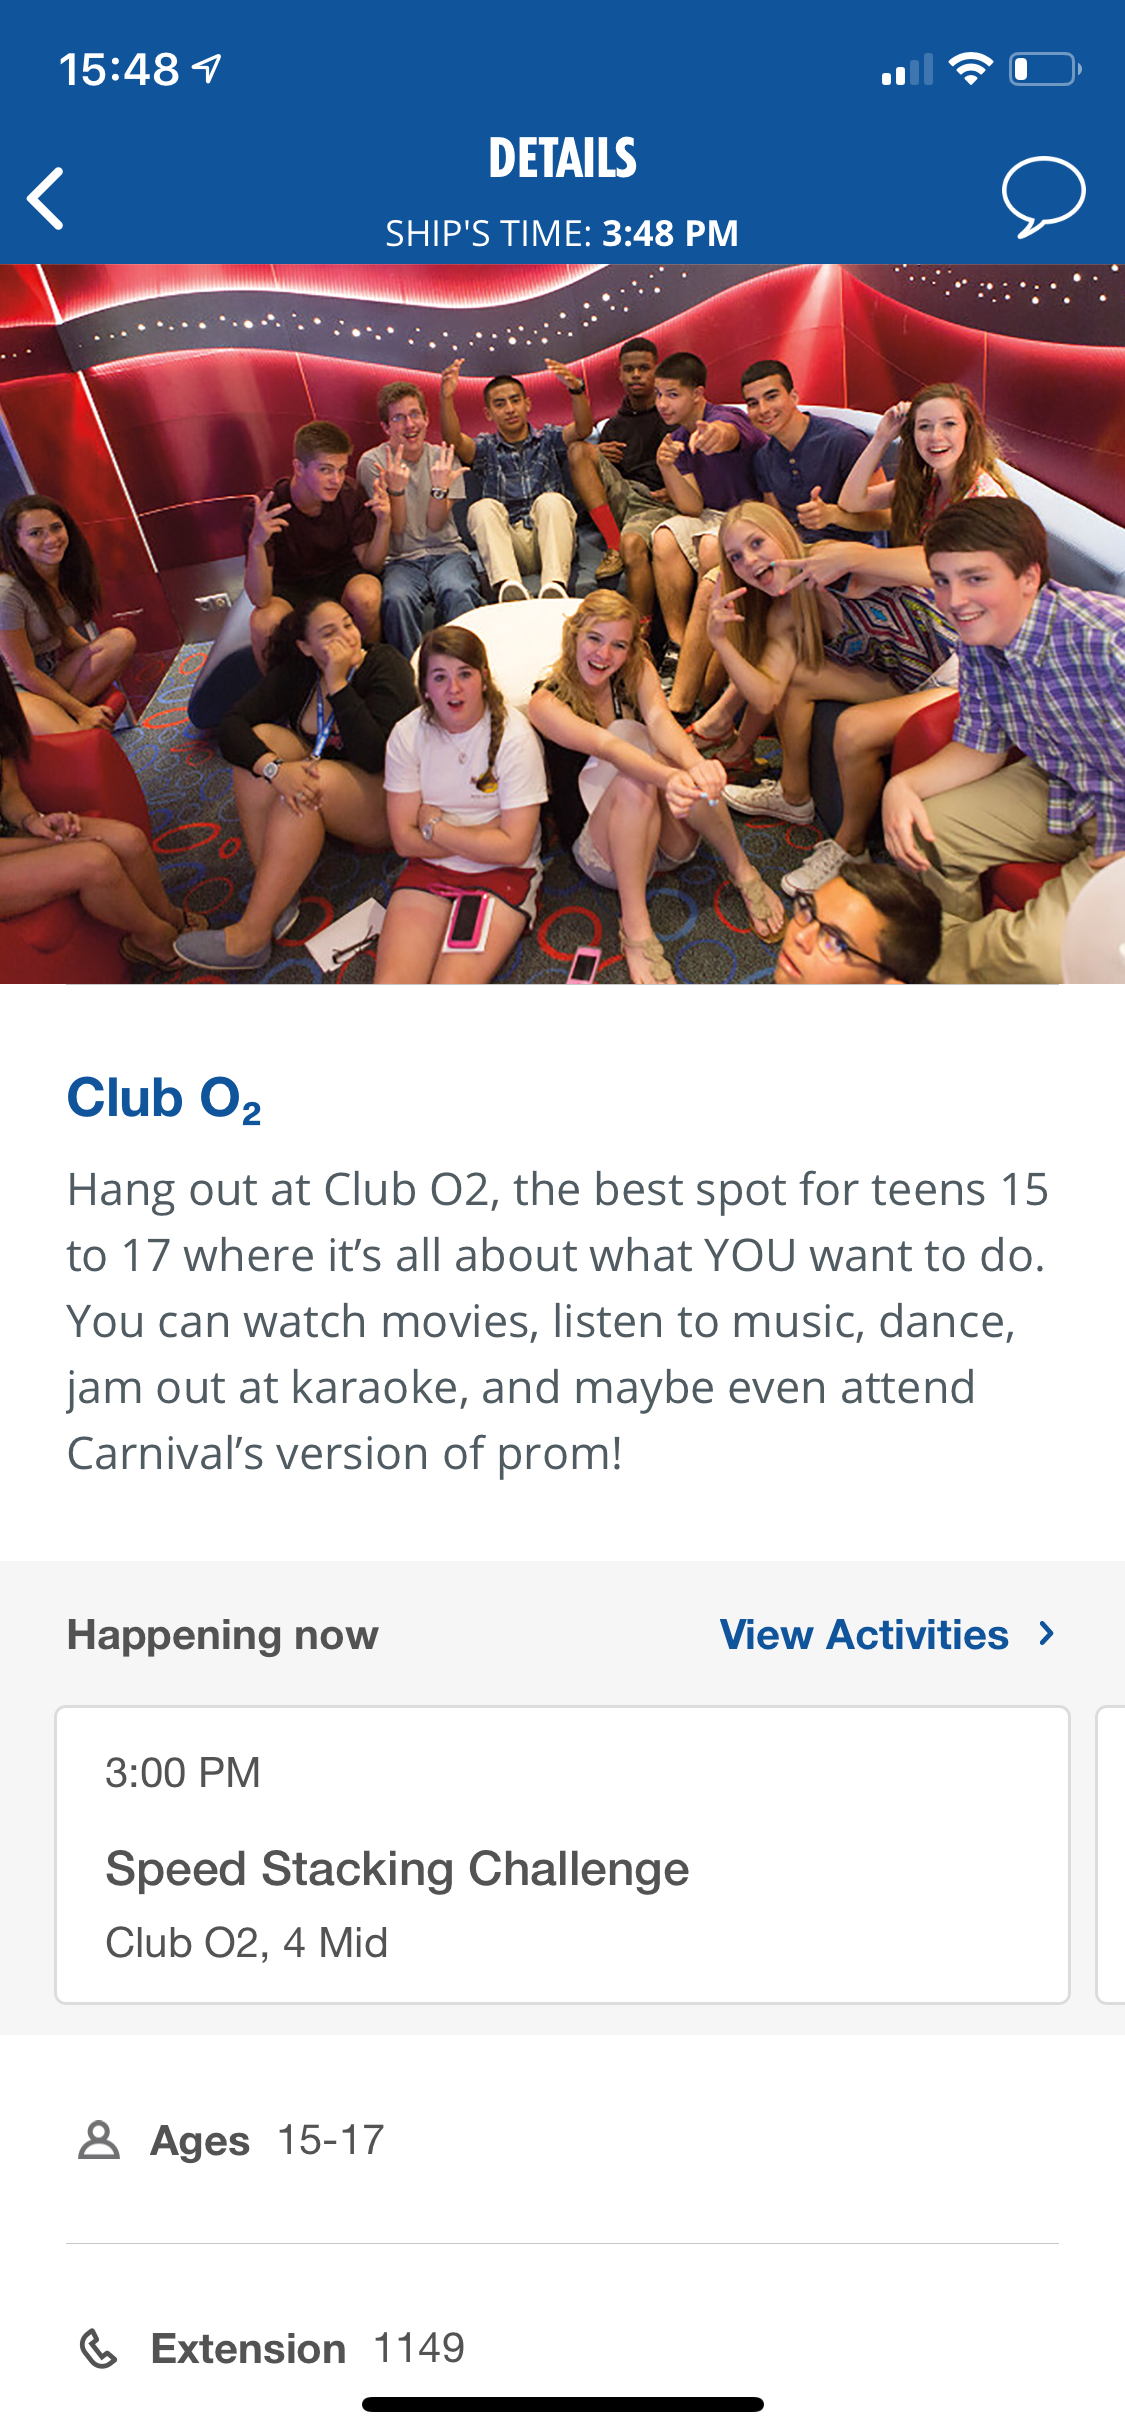 Carnival Cruise Line Enhances Popular HUB App to Include Comprehensive Day-by-Day Schedule of Youth Activities